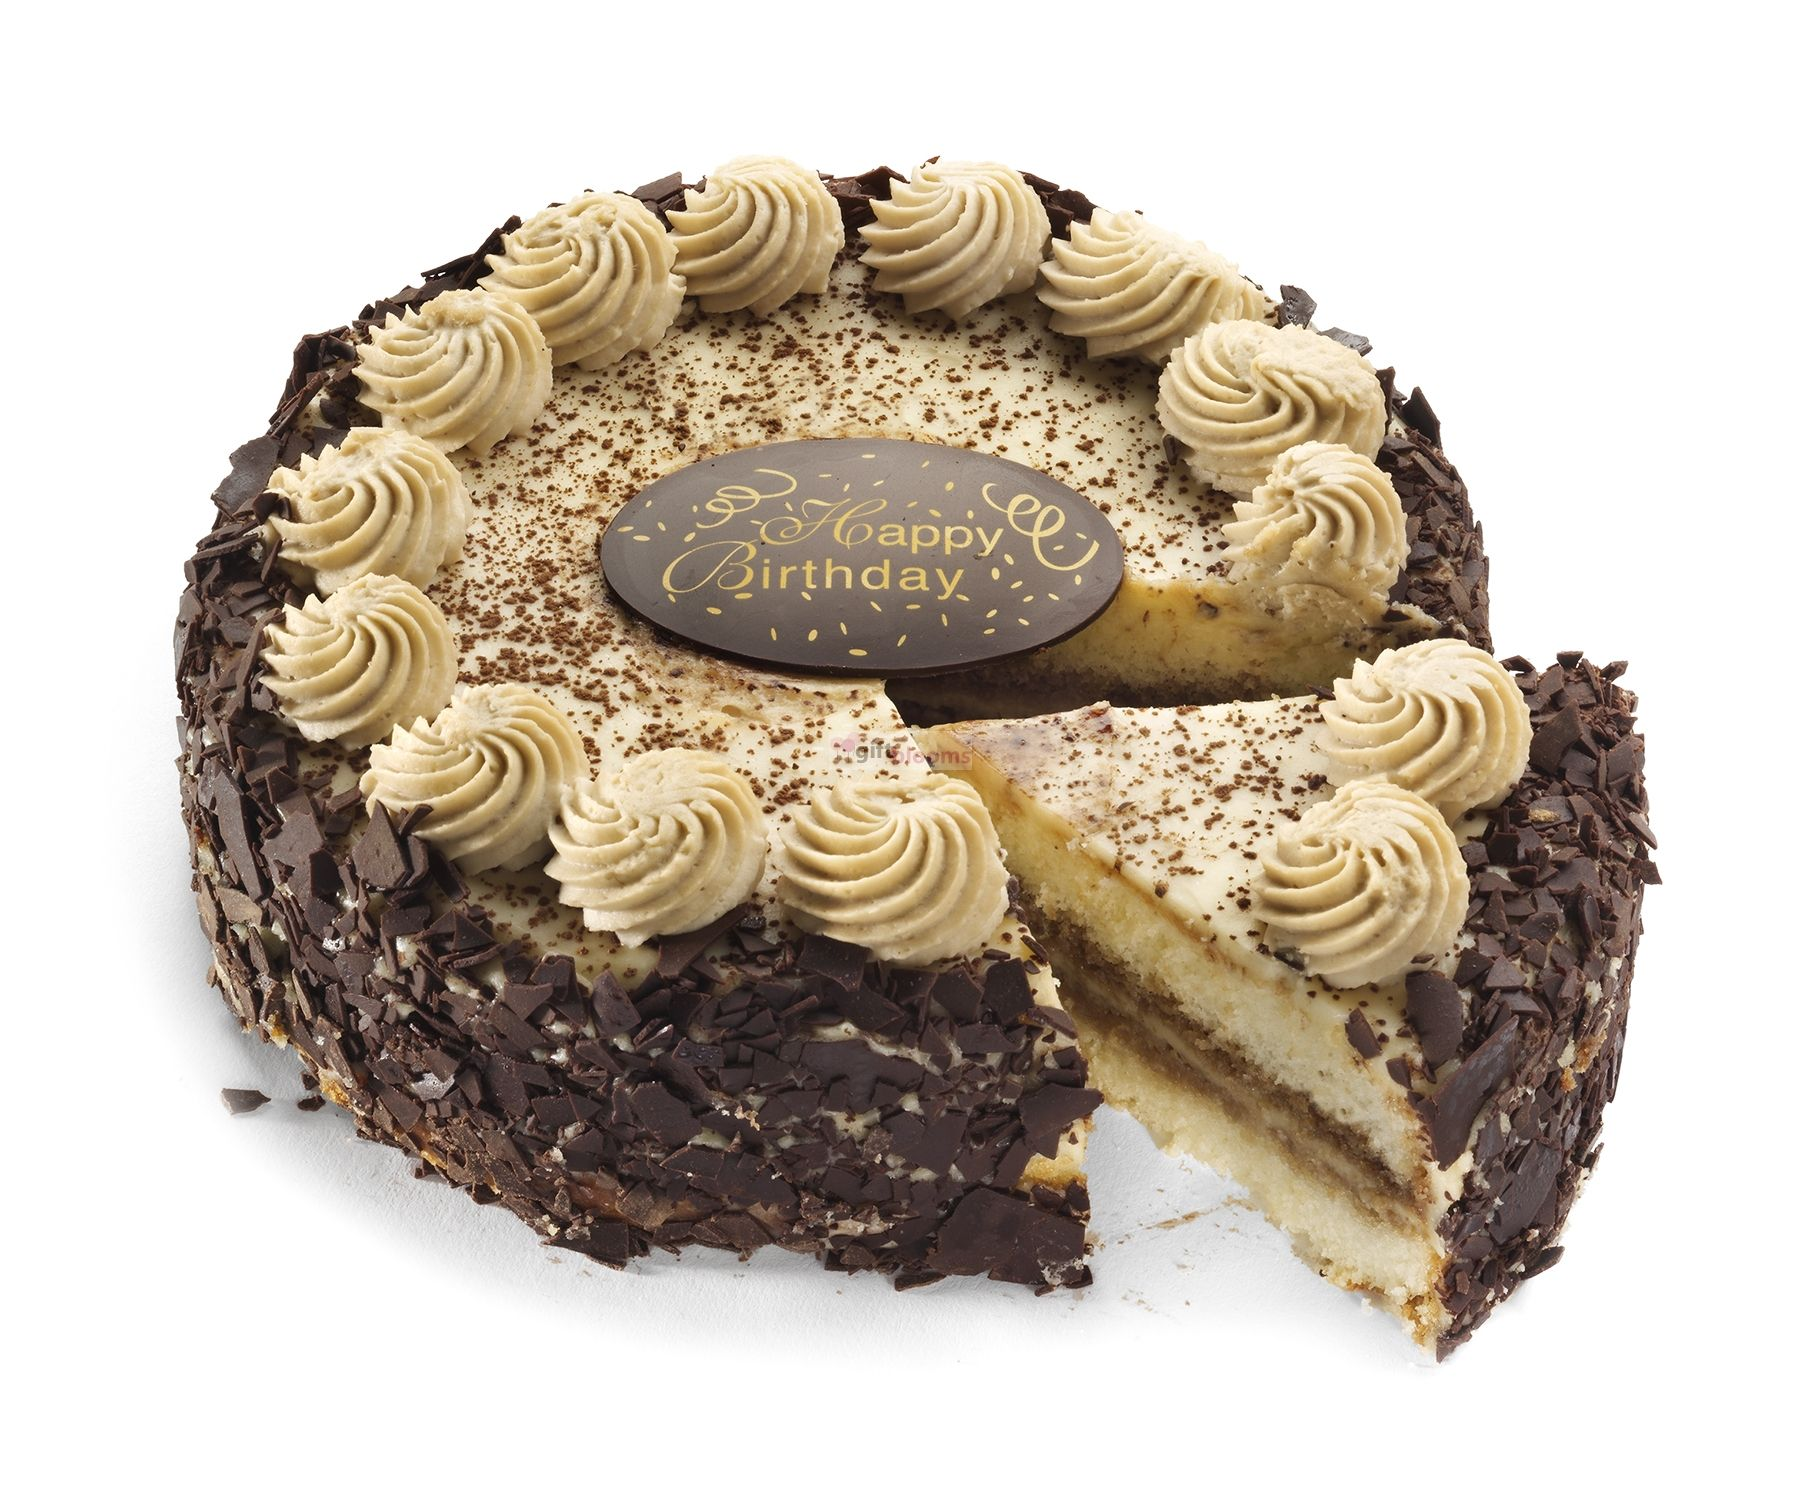 Delicious 1 KG BUTTERSCOTCH CAKE For delivery as Ramada Gift